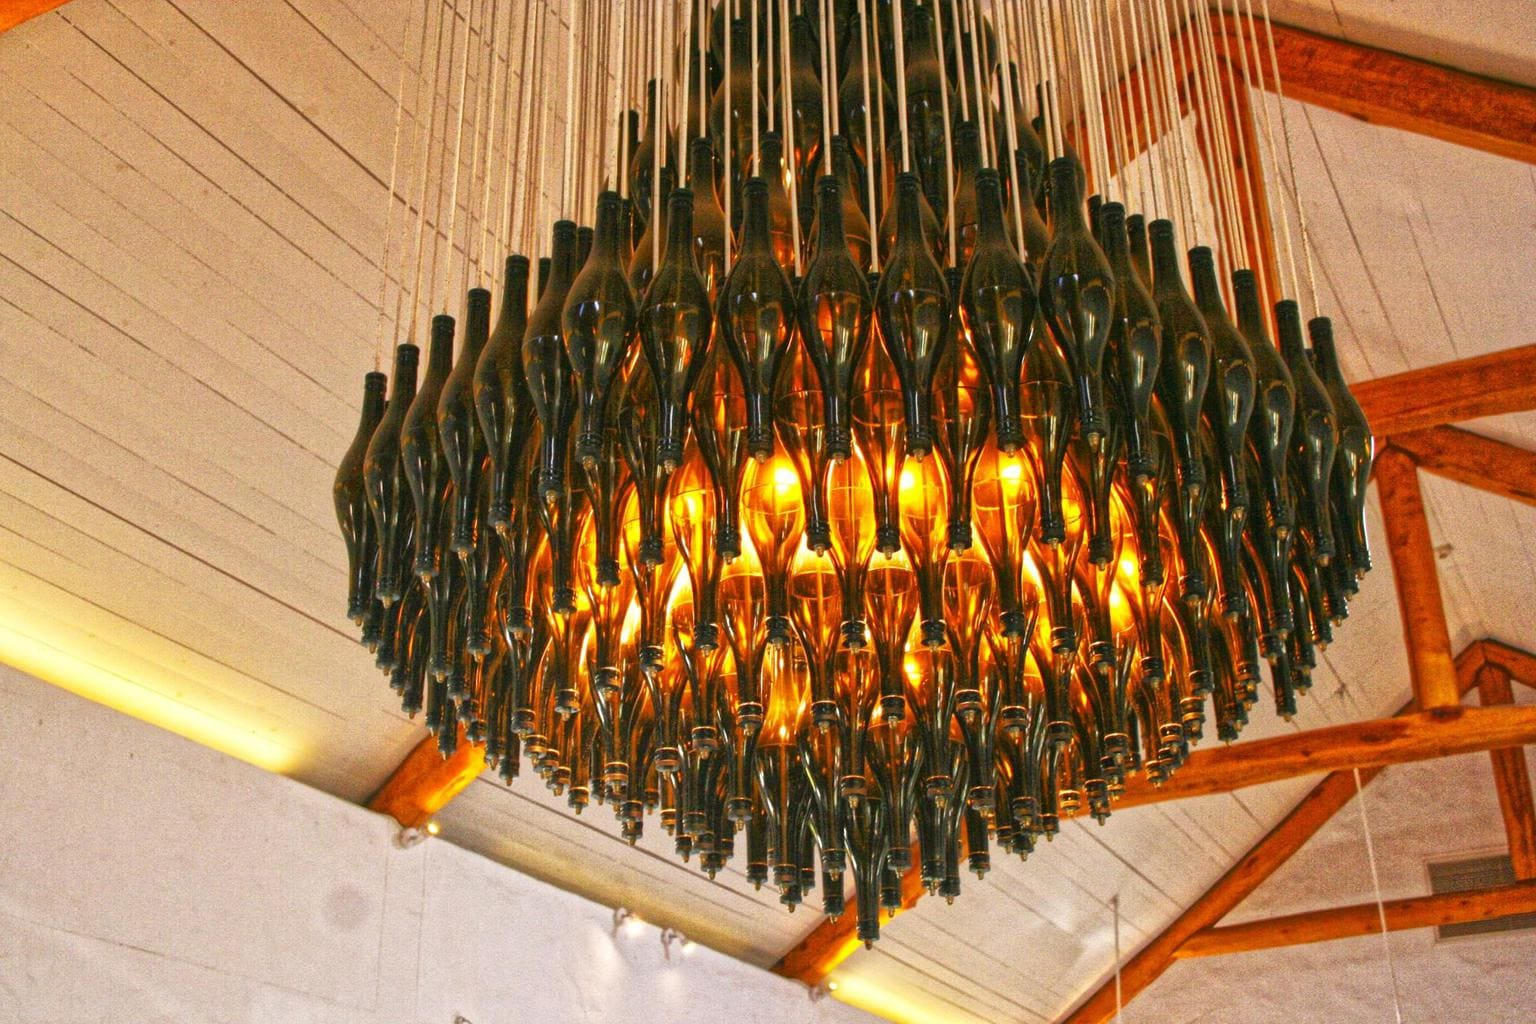 Chandelier at Spier tasting room